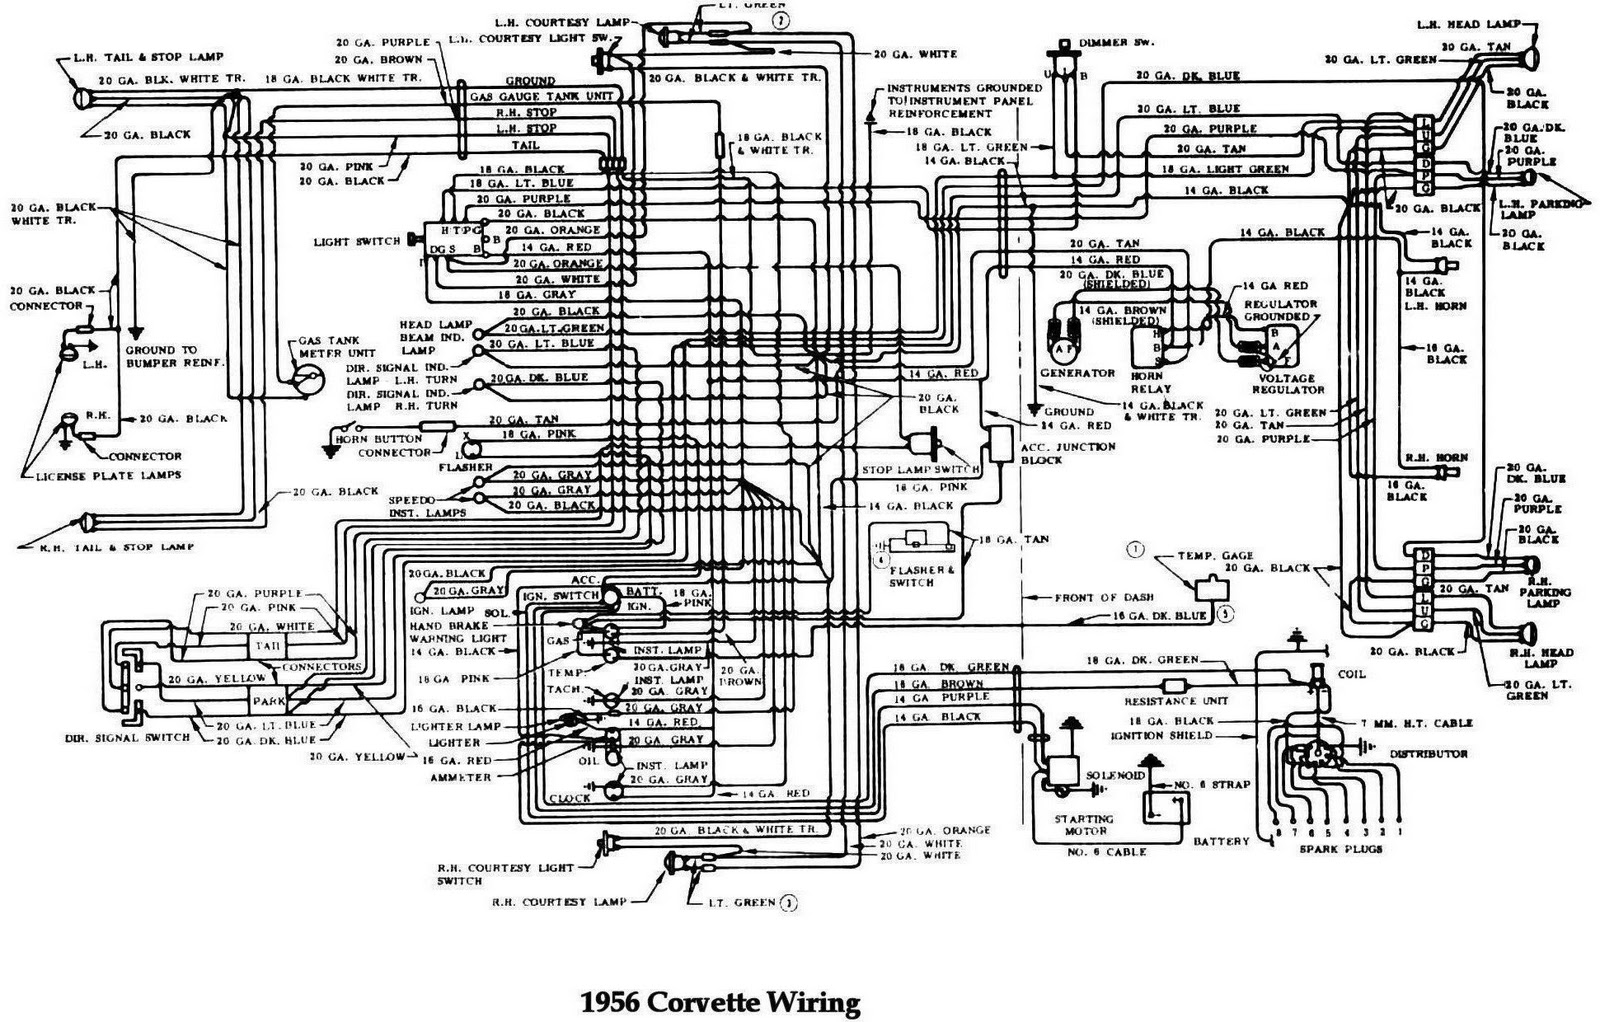 1957 Ford Fairlane Headlight Wiring Diagram 1957 Ford